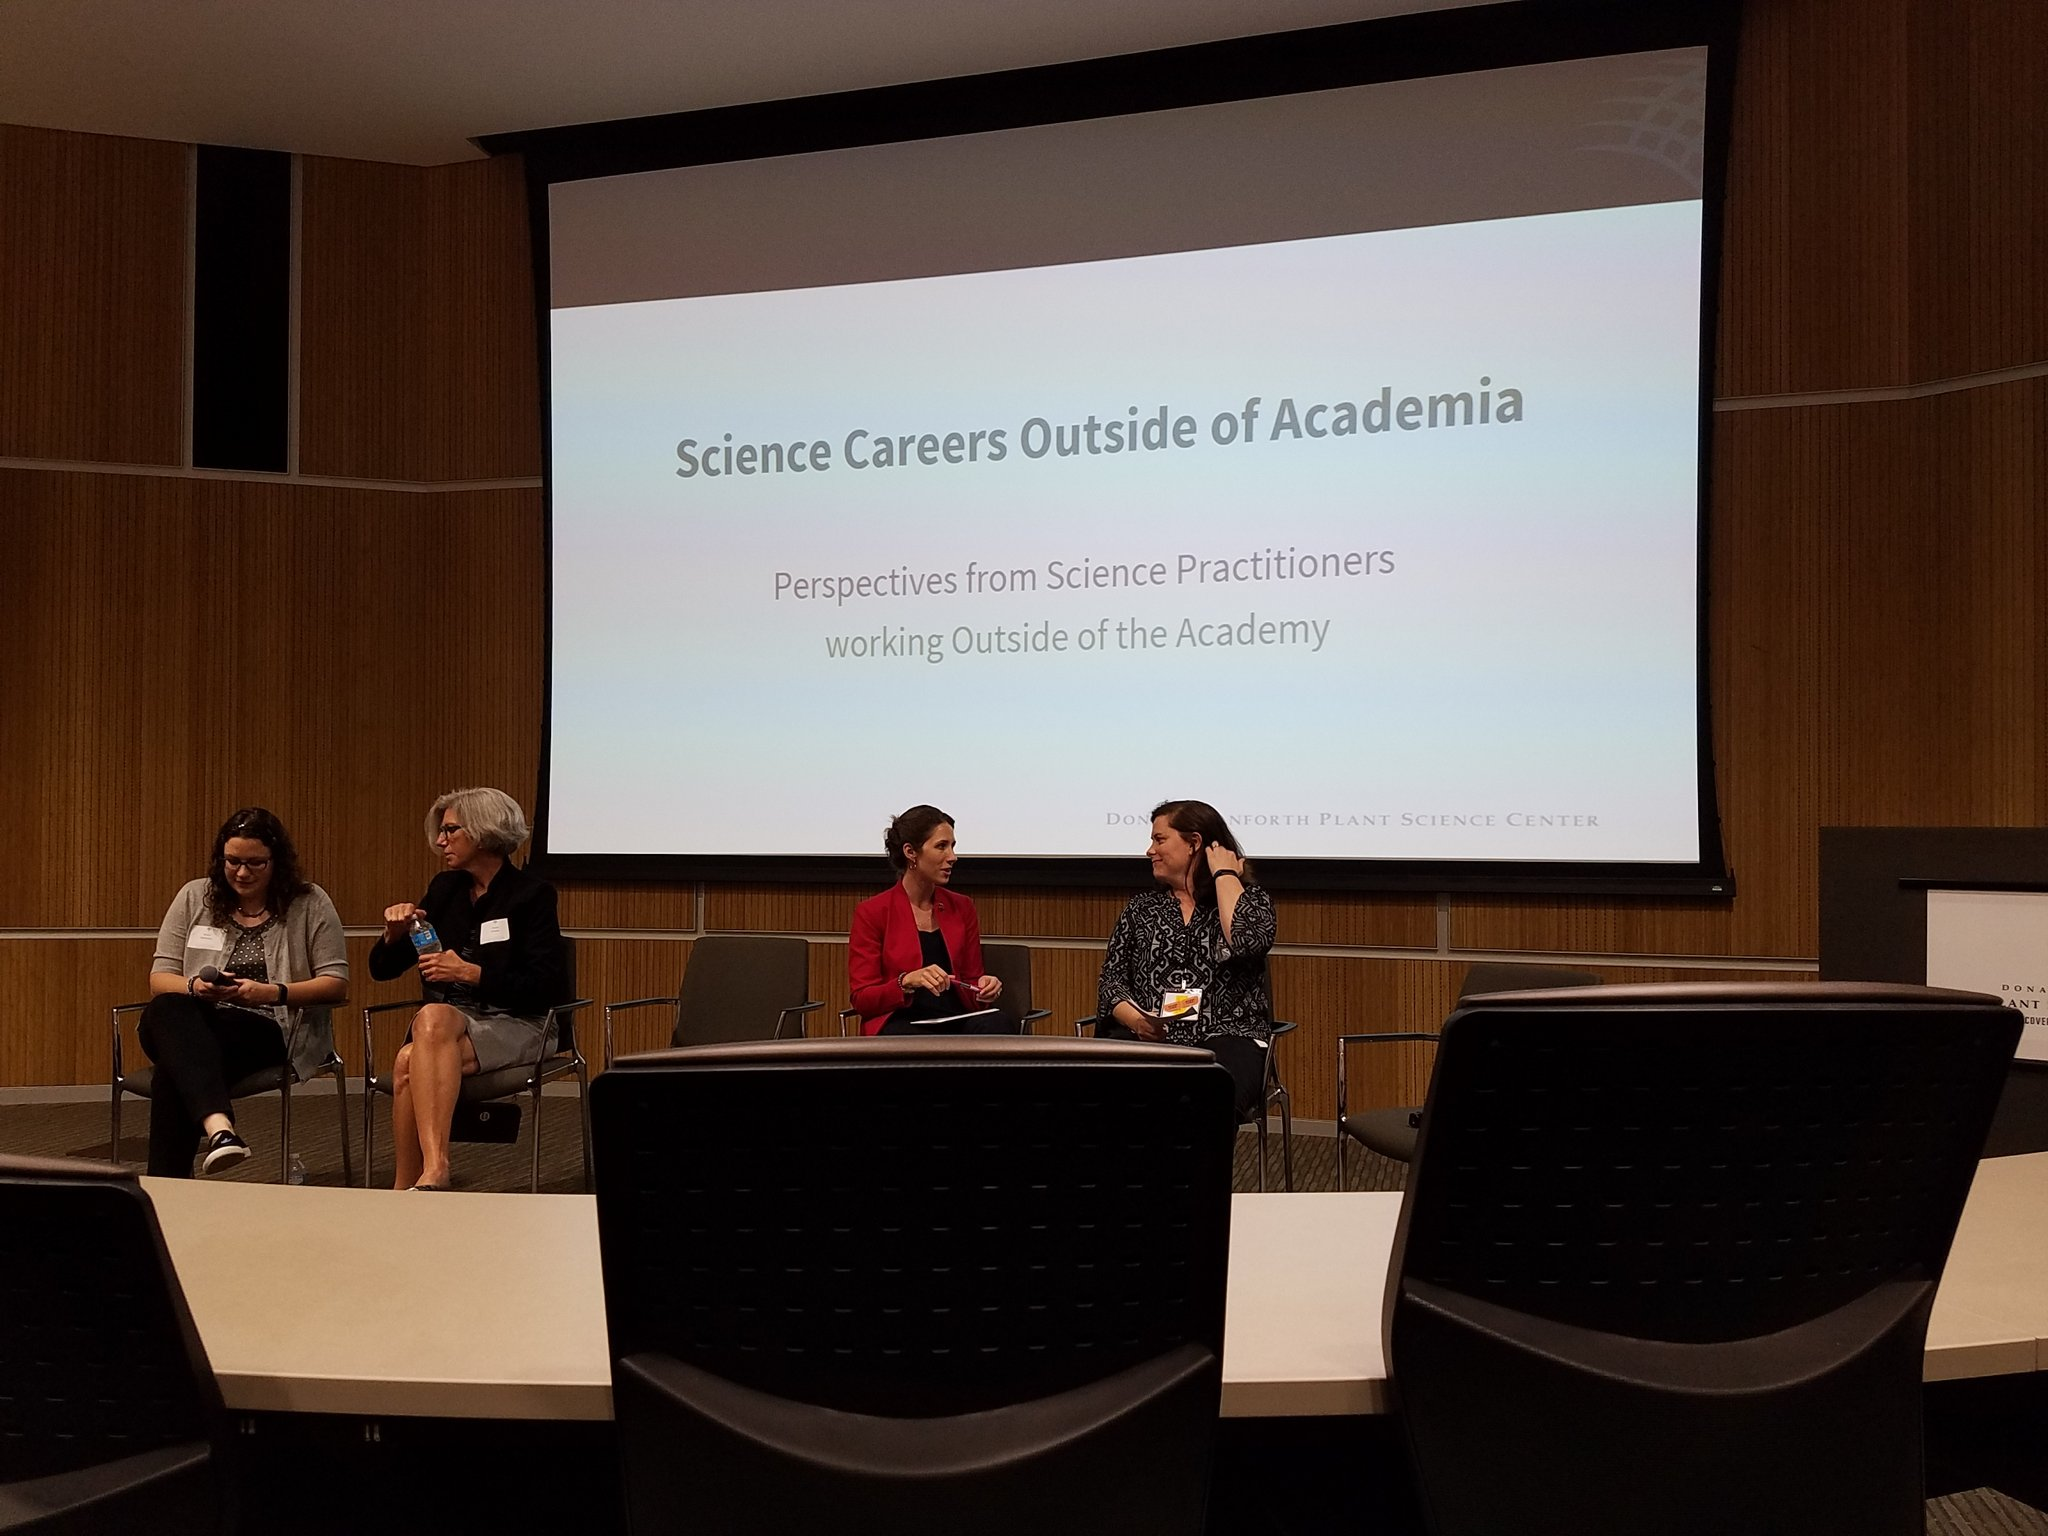 Next up, Careers in Industry Panel @DanforthCenter #icar2017 #TPCOnTheRoad @ThePubClub https://t.co/yyUDhT58og